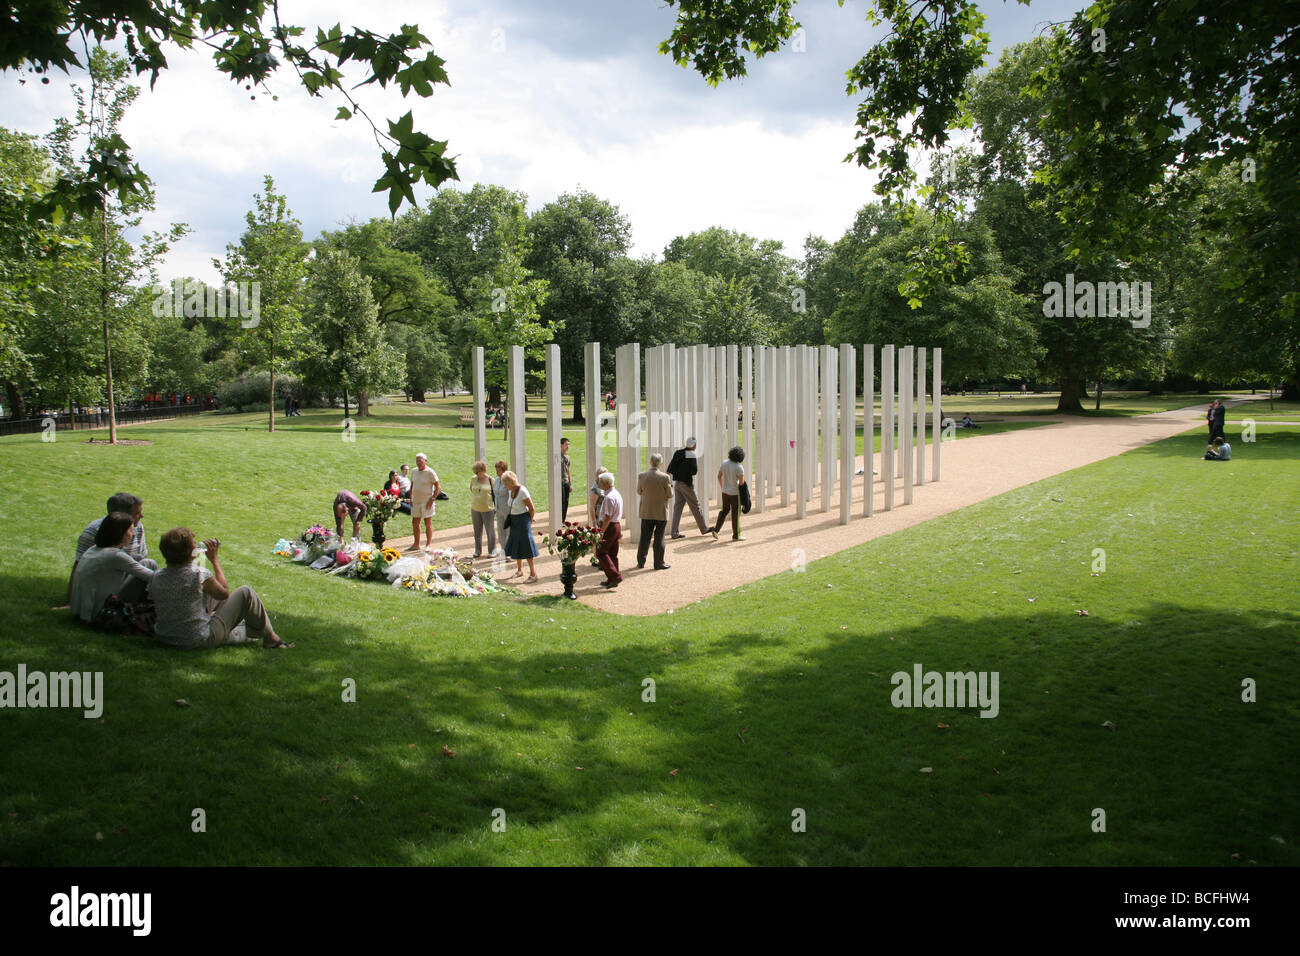 Memorial to the victims of the London terrorist attack on 7th July 2005, Hyde Park, London, UK - Stock Image